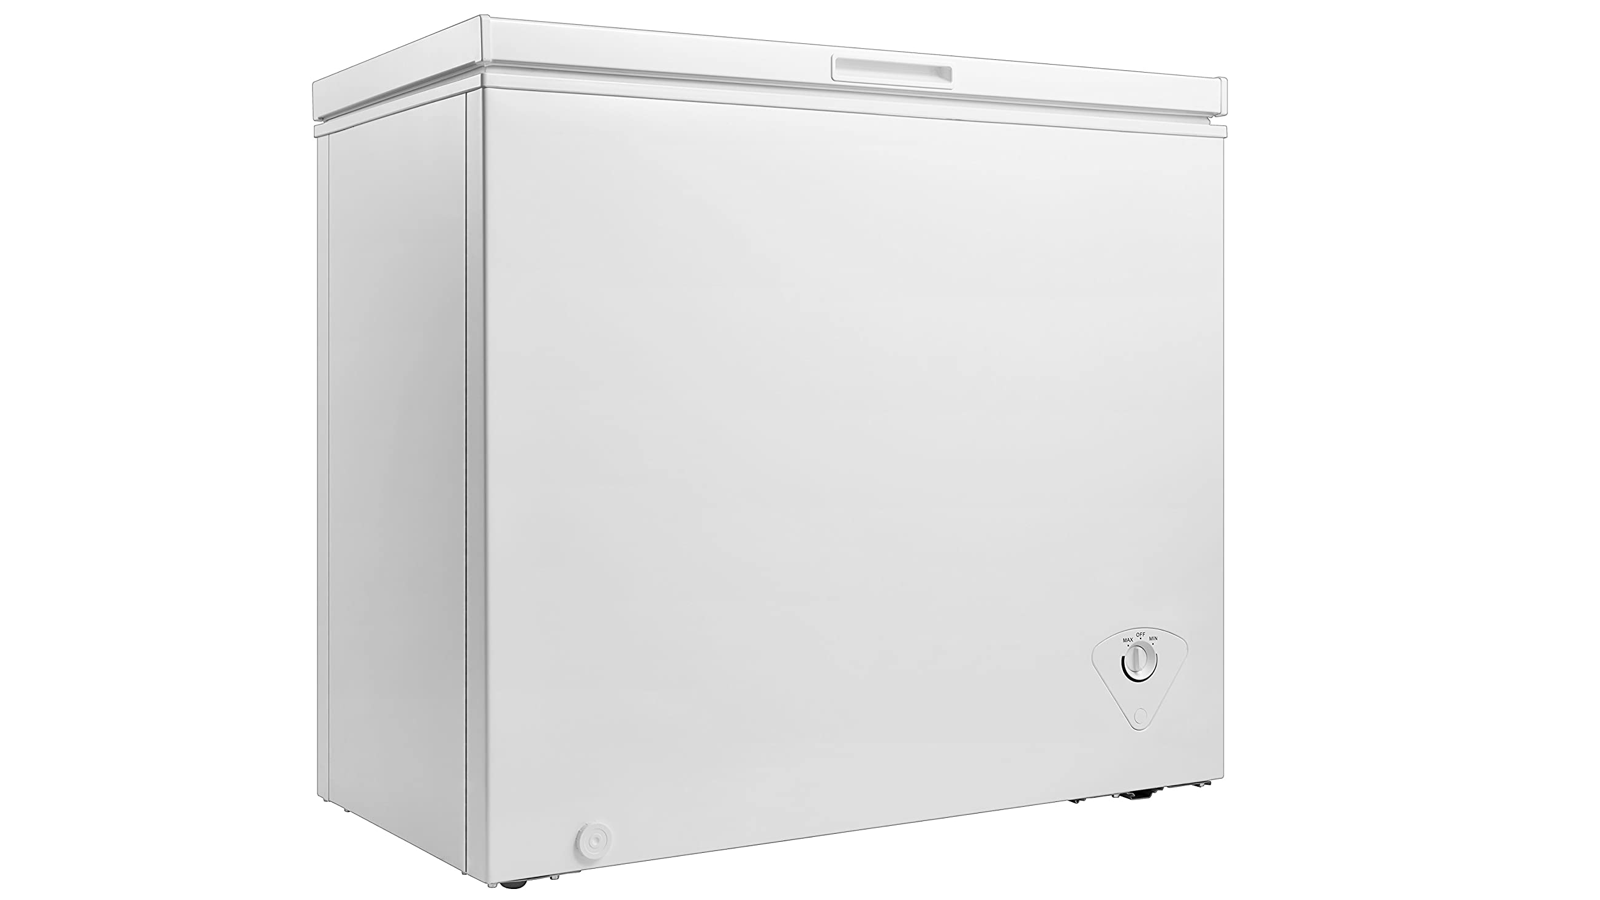 large, rectangular, off-white chest freezer with a dial on the bottom right corner